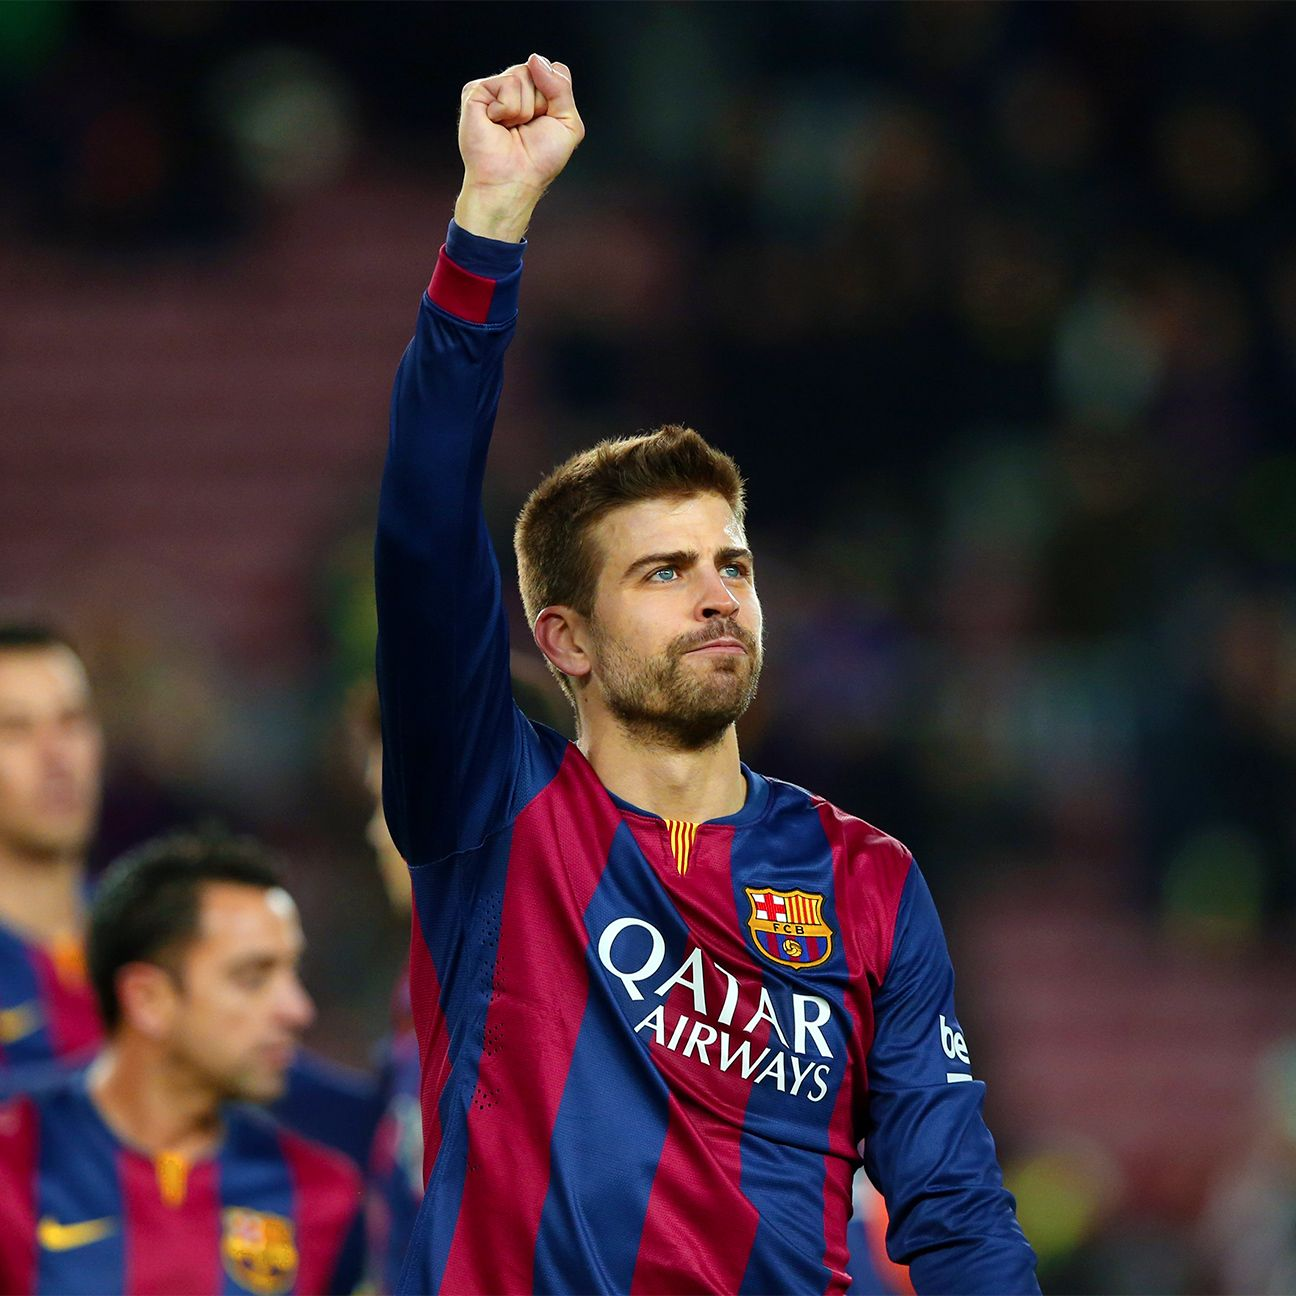 Gerard Pique's return to form played a key role in this season's resurgence at Barcelona.